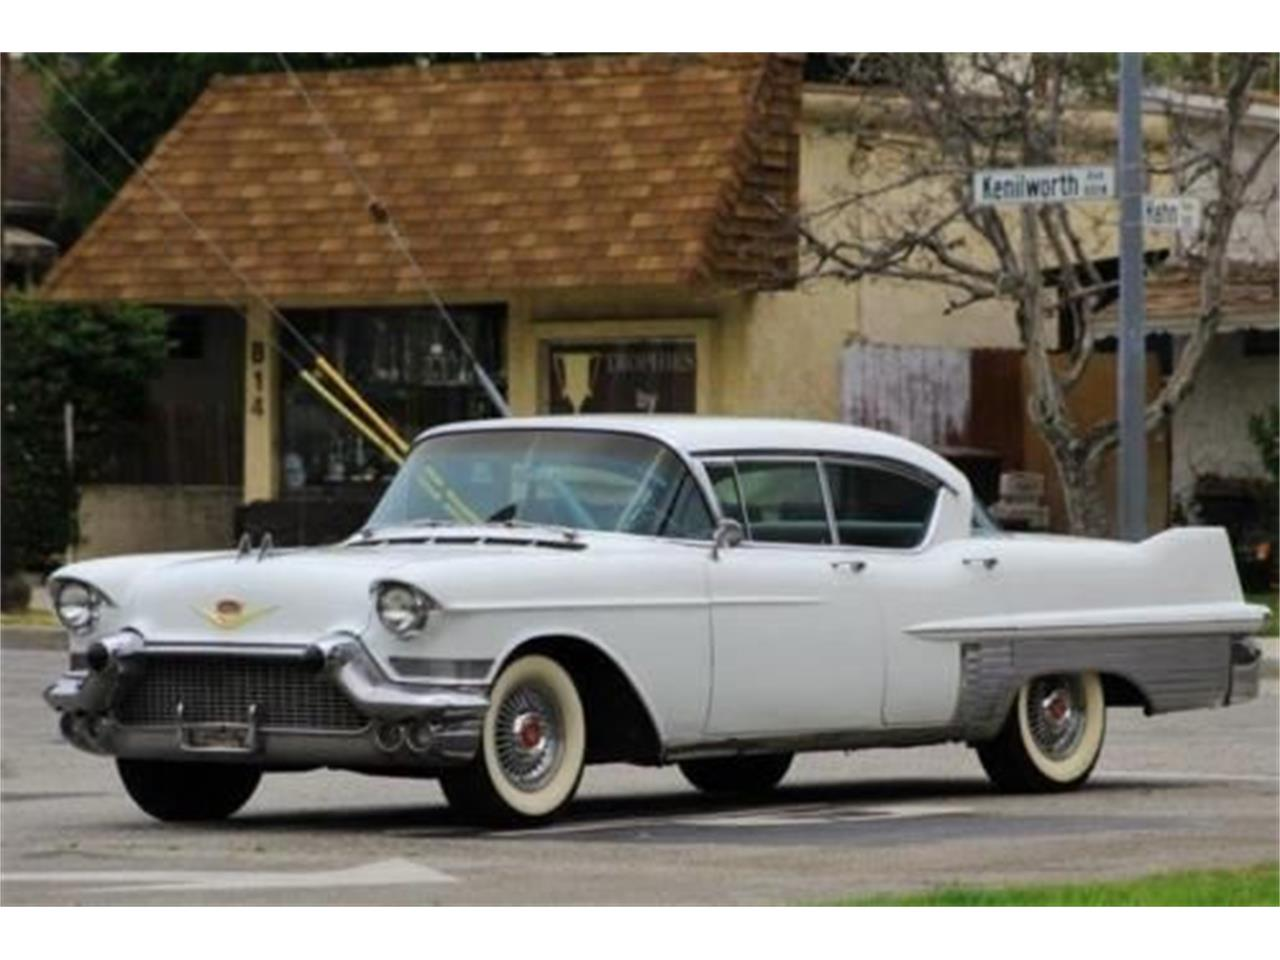 Classic Cadillac For Sale On Pg 25 Sort Asking 50s V8 Engine 1957 Series 60